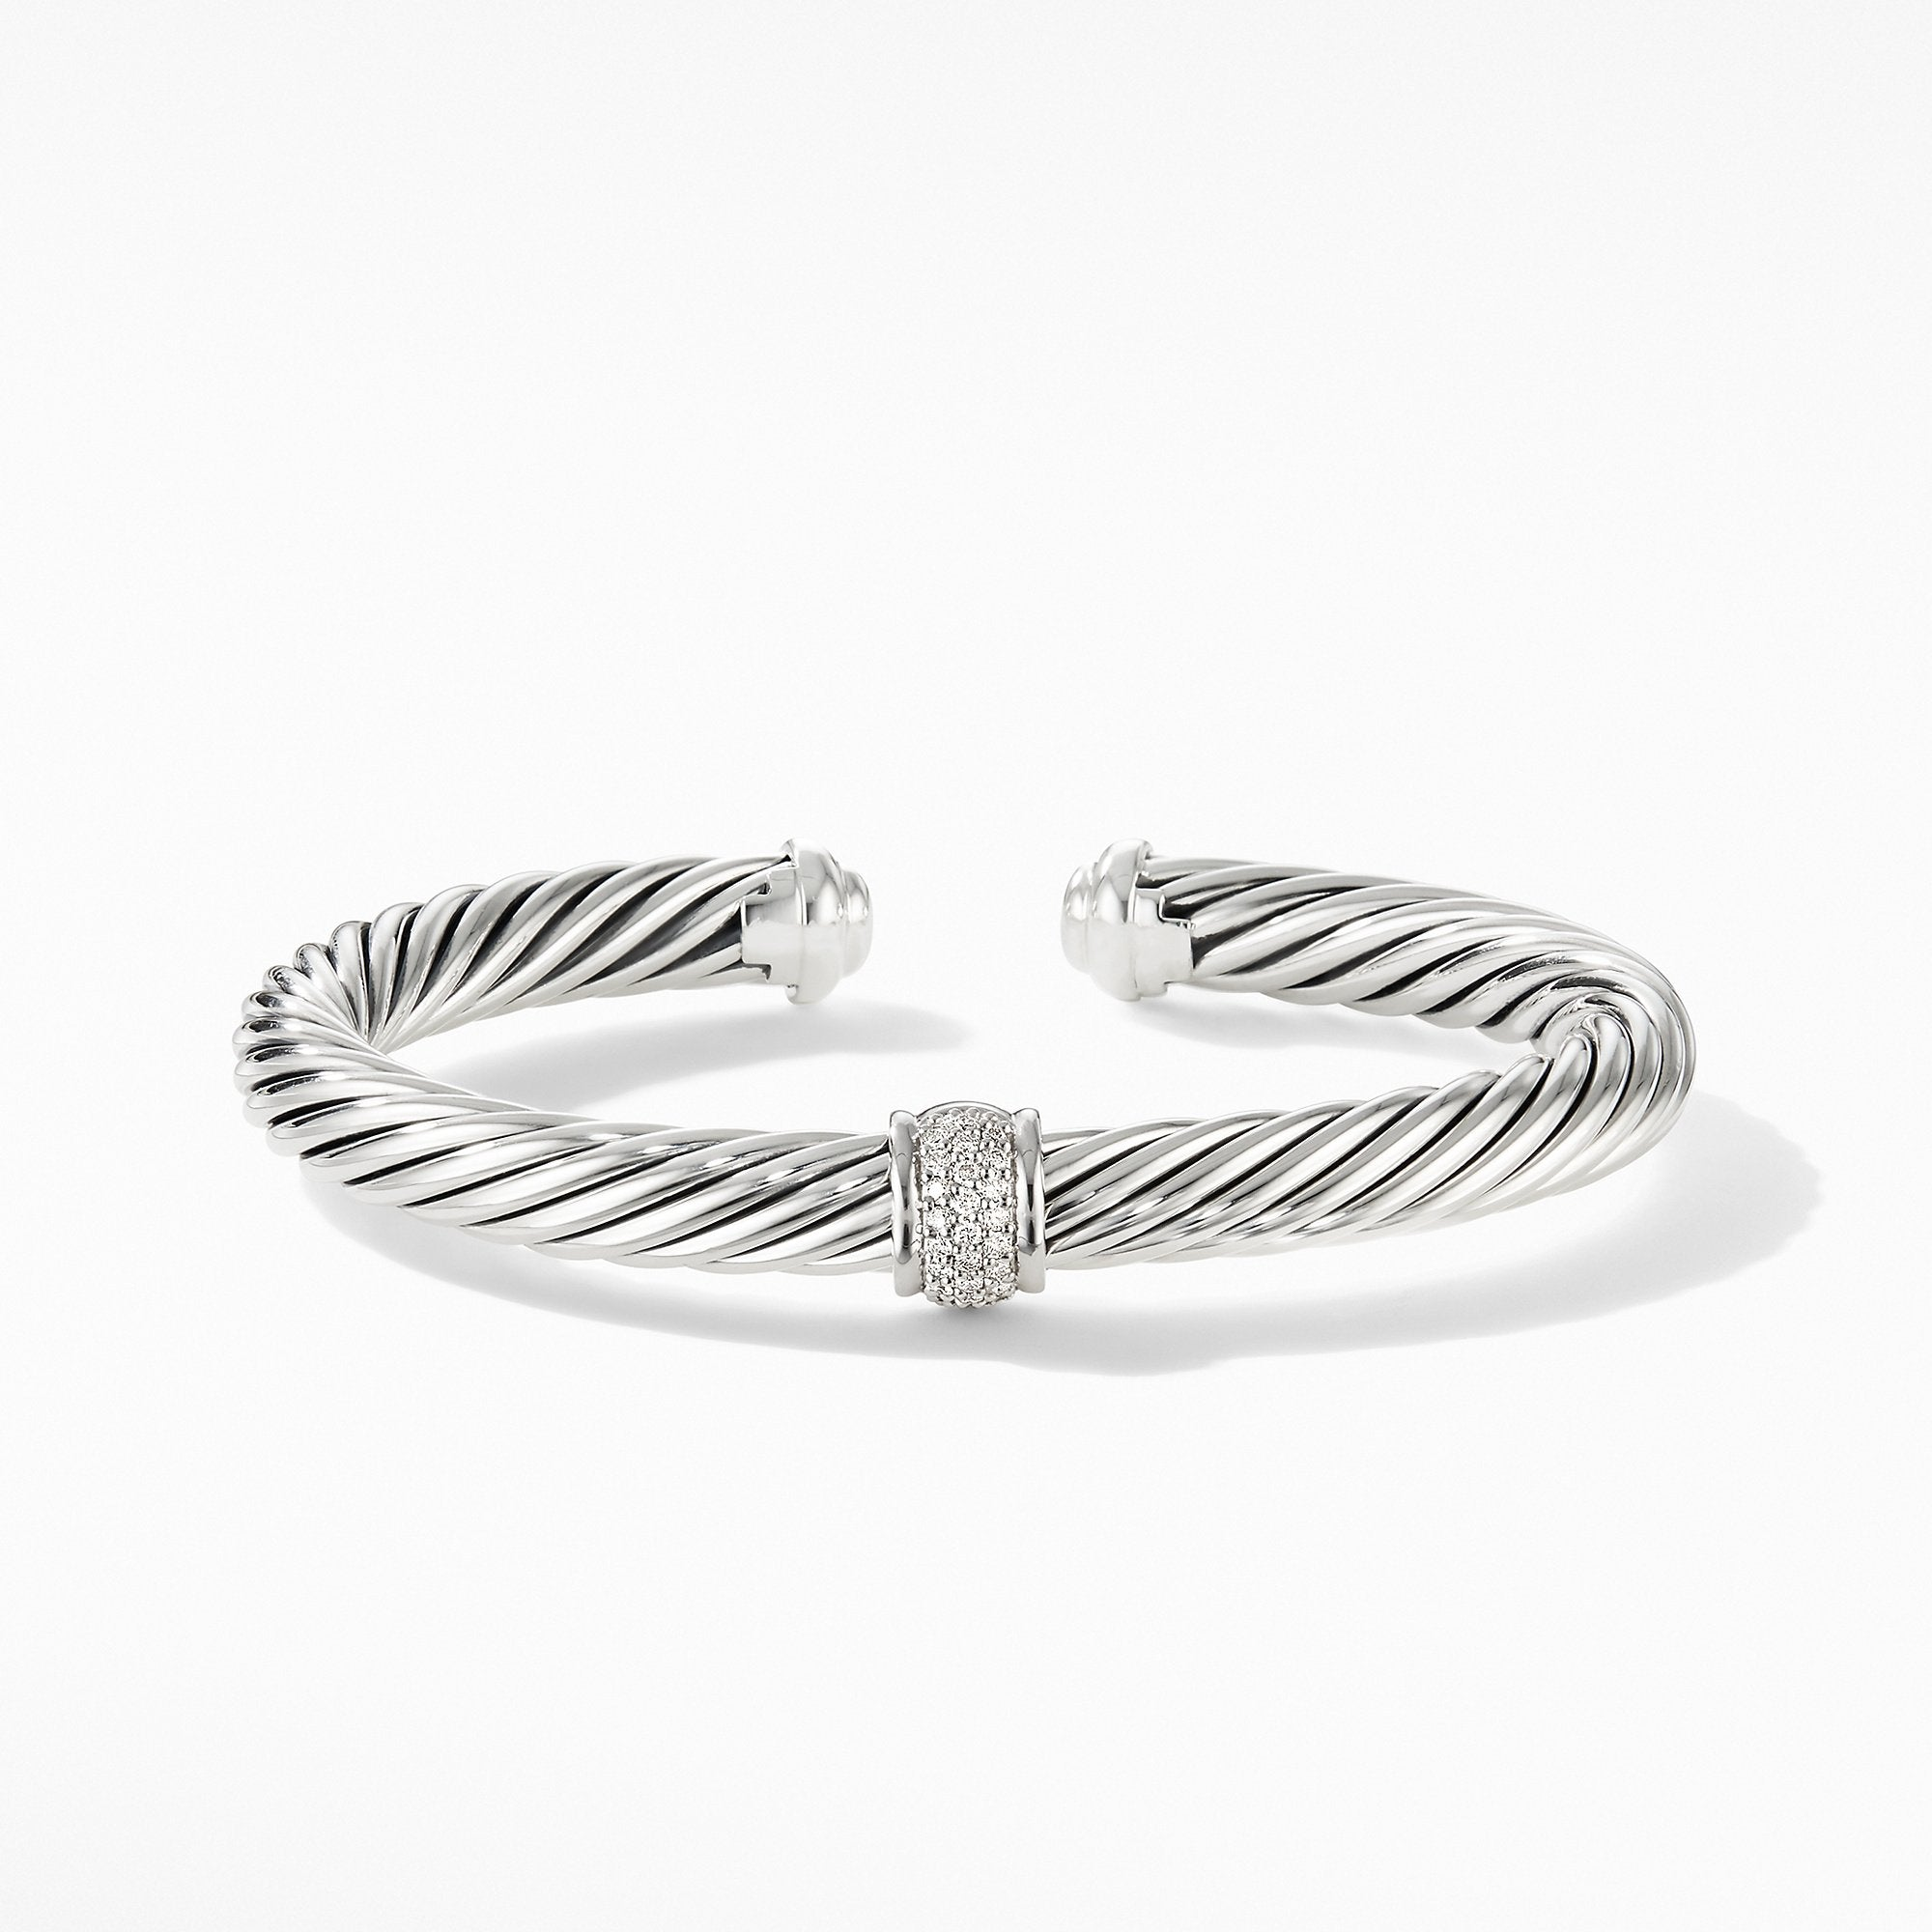 Cable Classic Center Station Bracelet with Pavé Diamonds